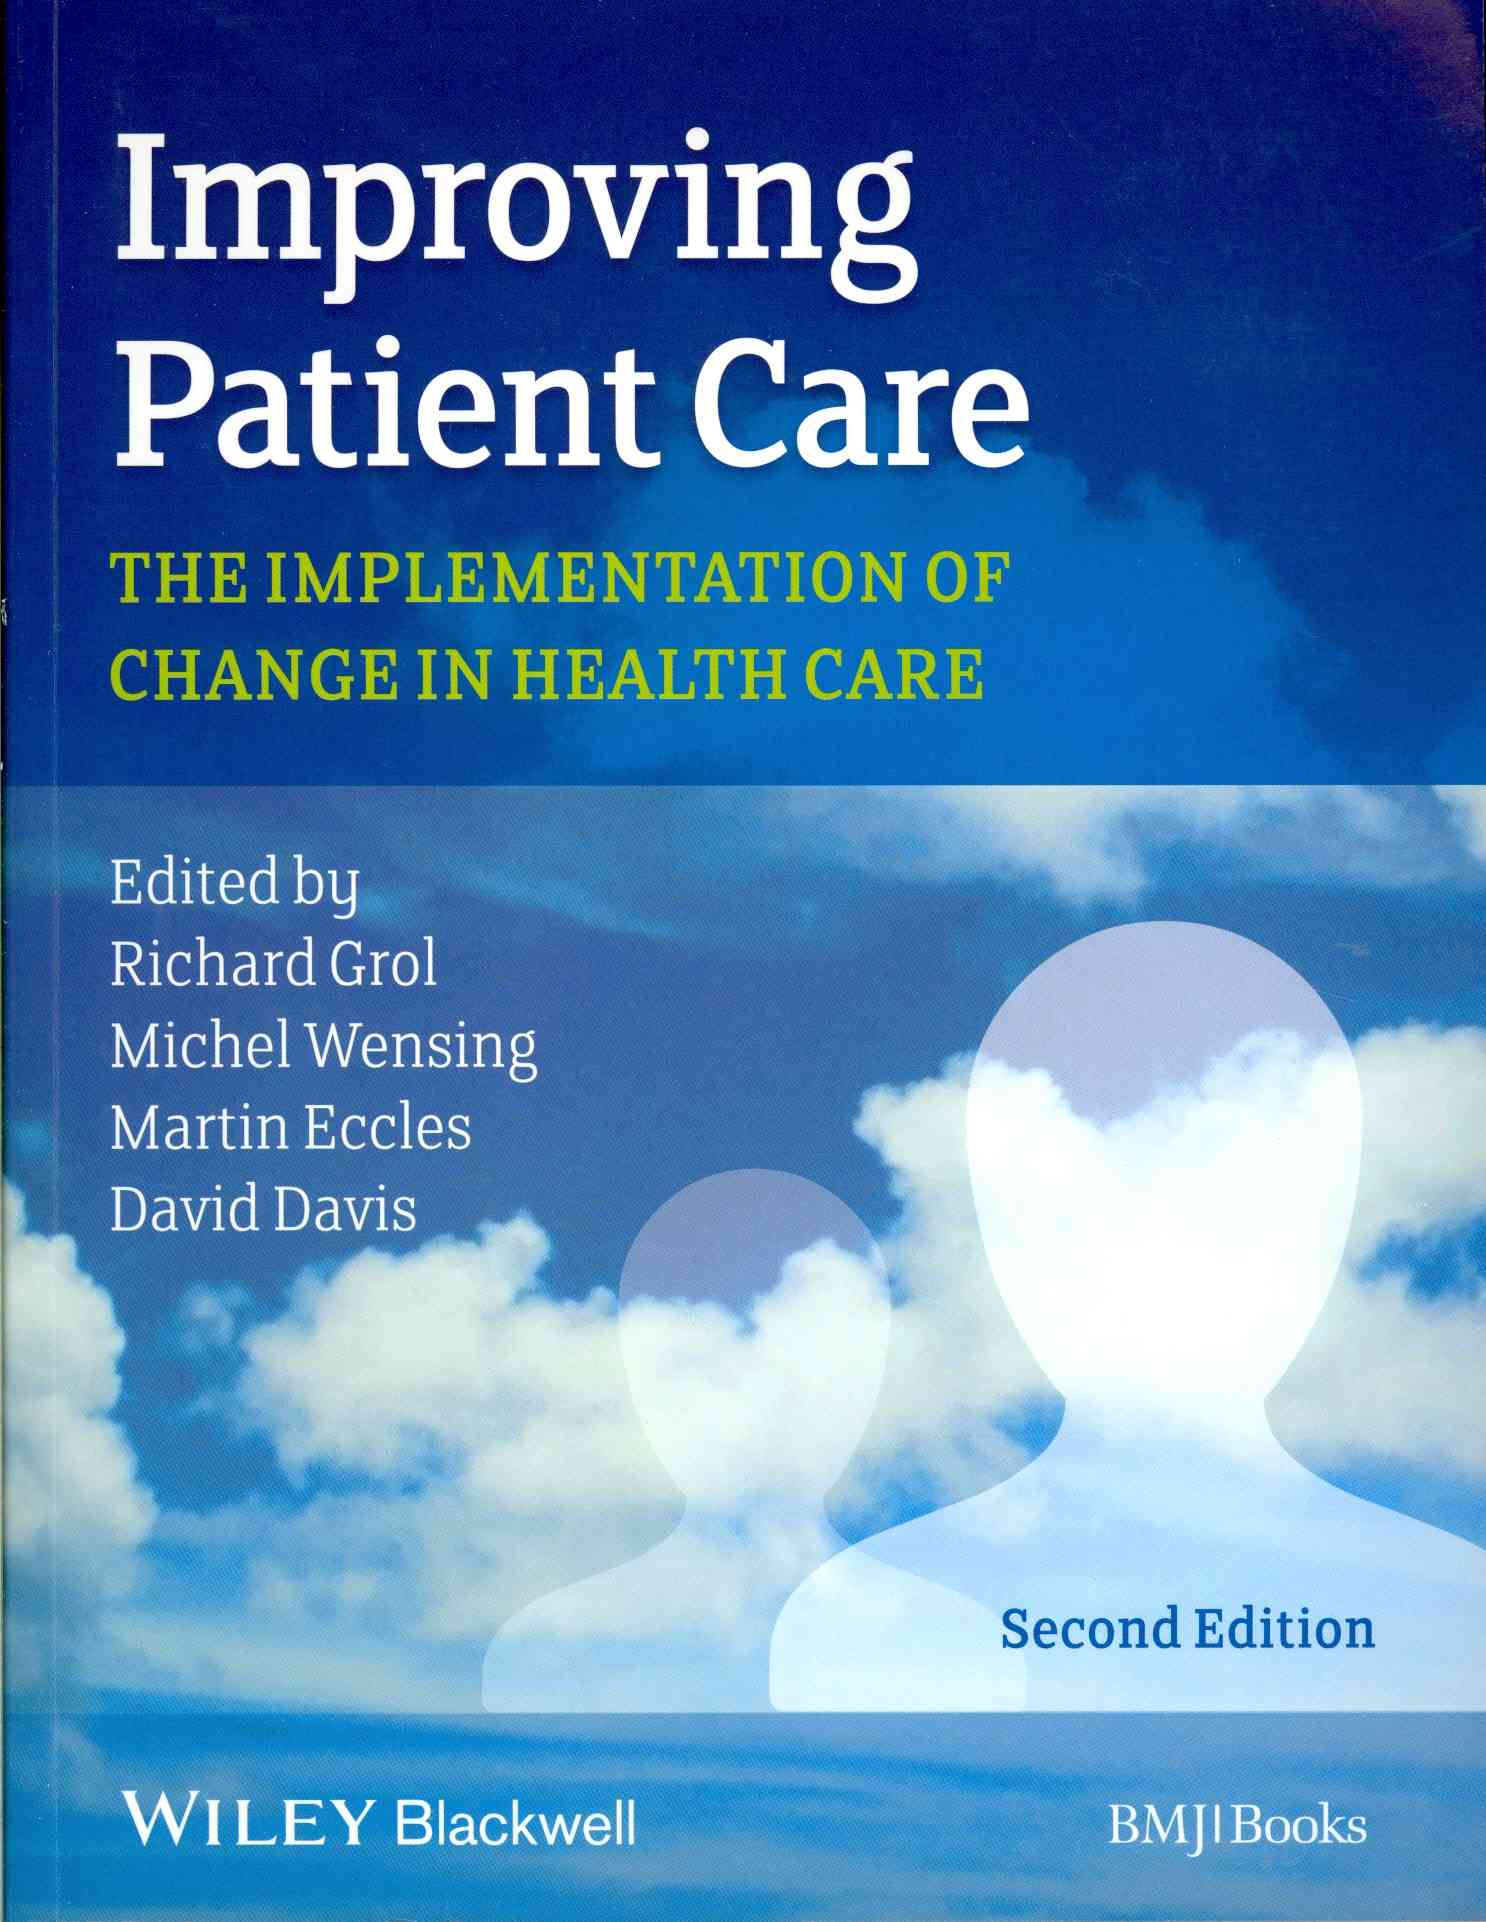 Improving Patient Care By Grol, Richard (EDT)/ Wensing, Michel (EDT)/ Eccles, Martin (EDT)/ Davis, David (EDT)